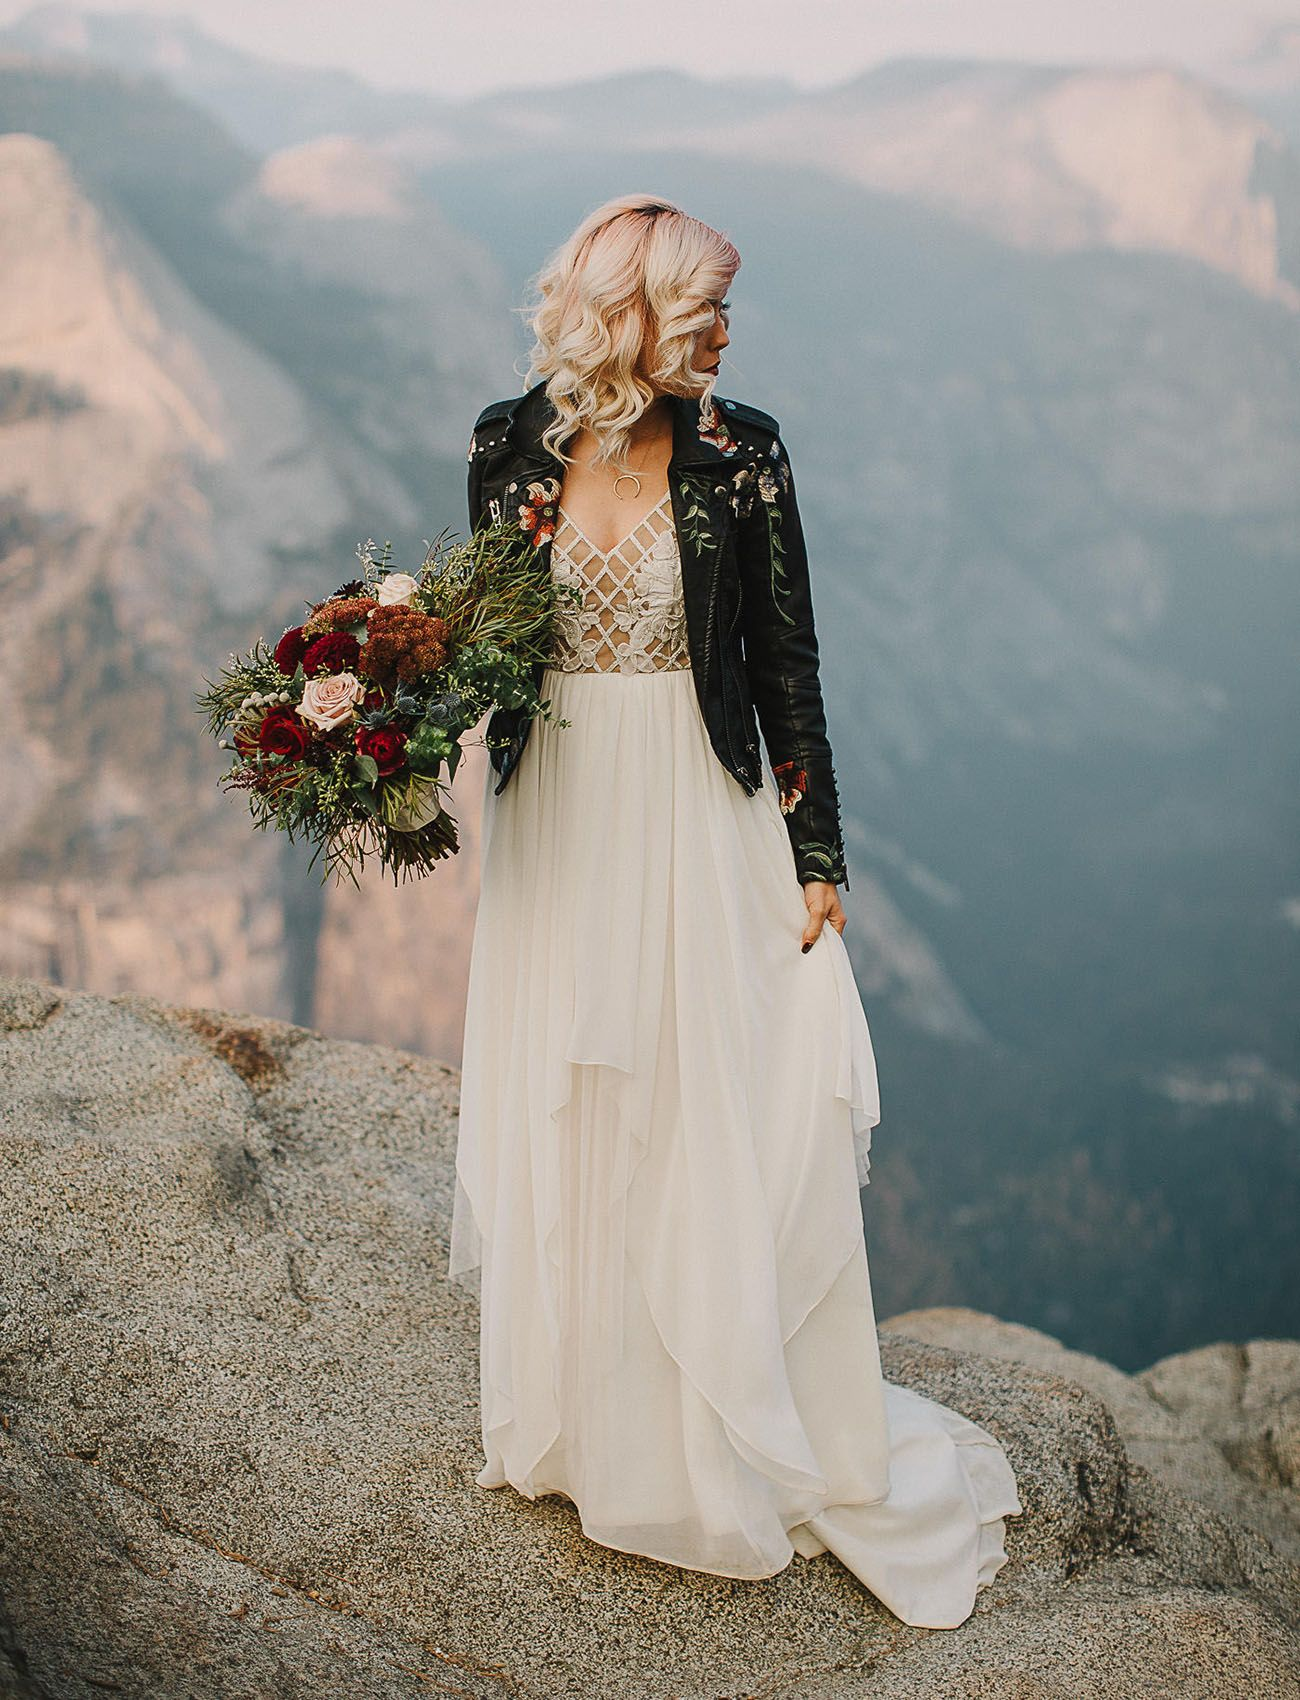 Leather wedding dress  leather jacket bride leatherjacket weddingdress edgybride